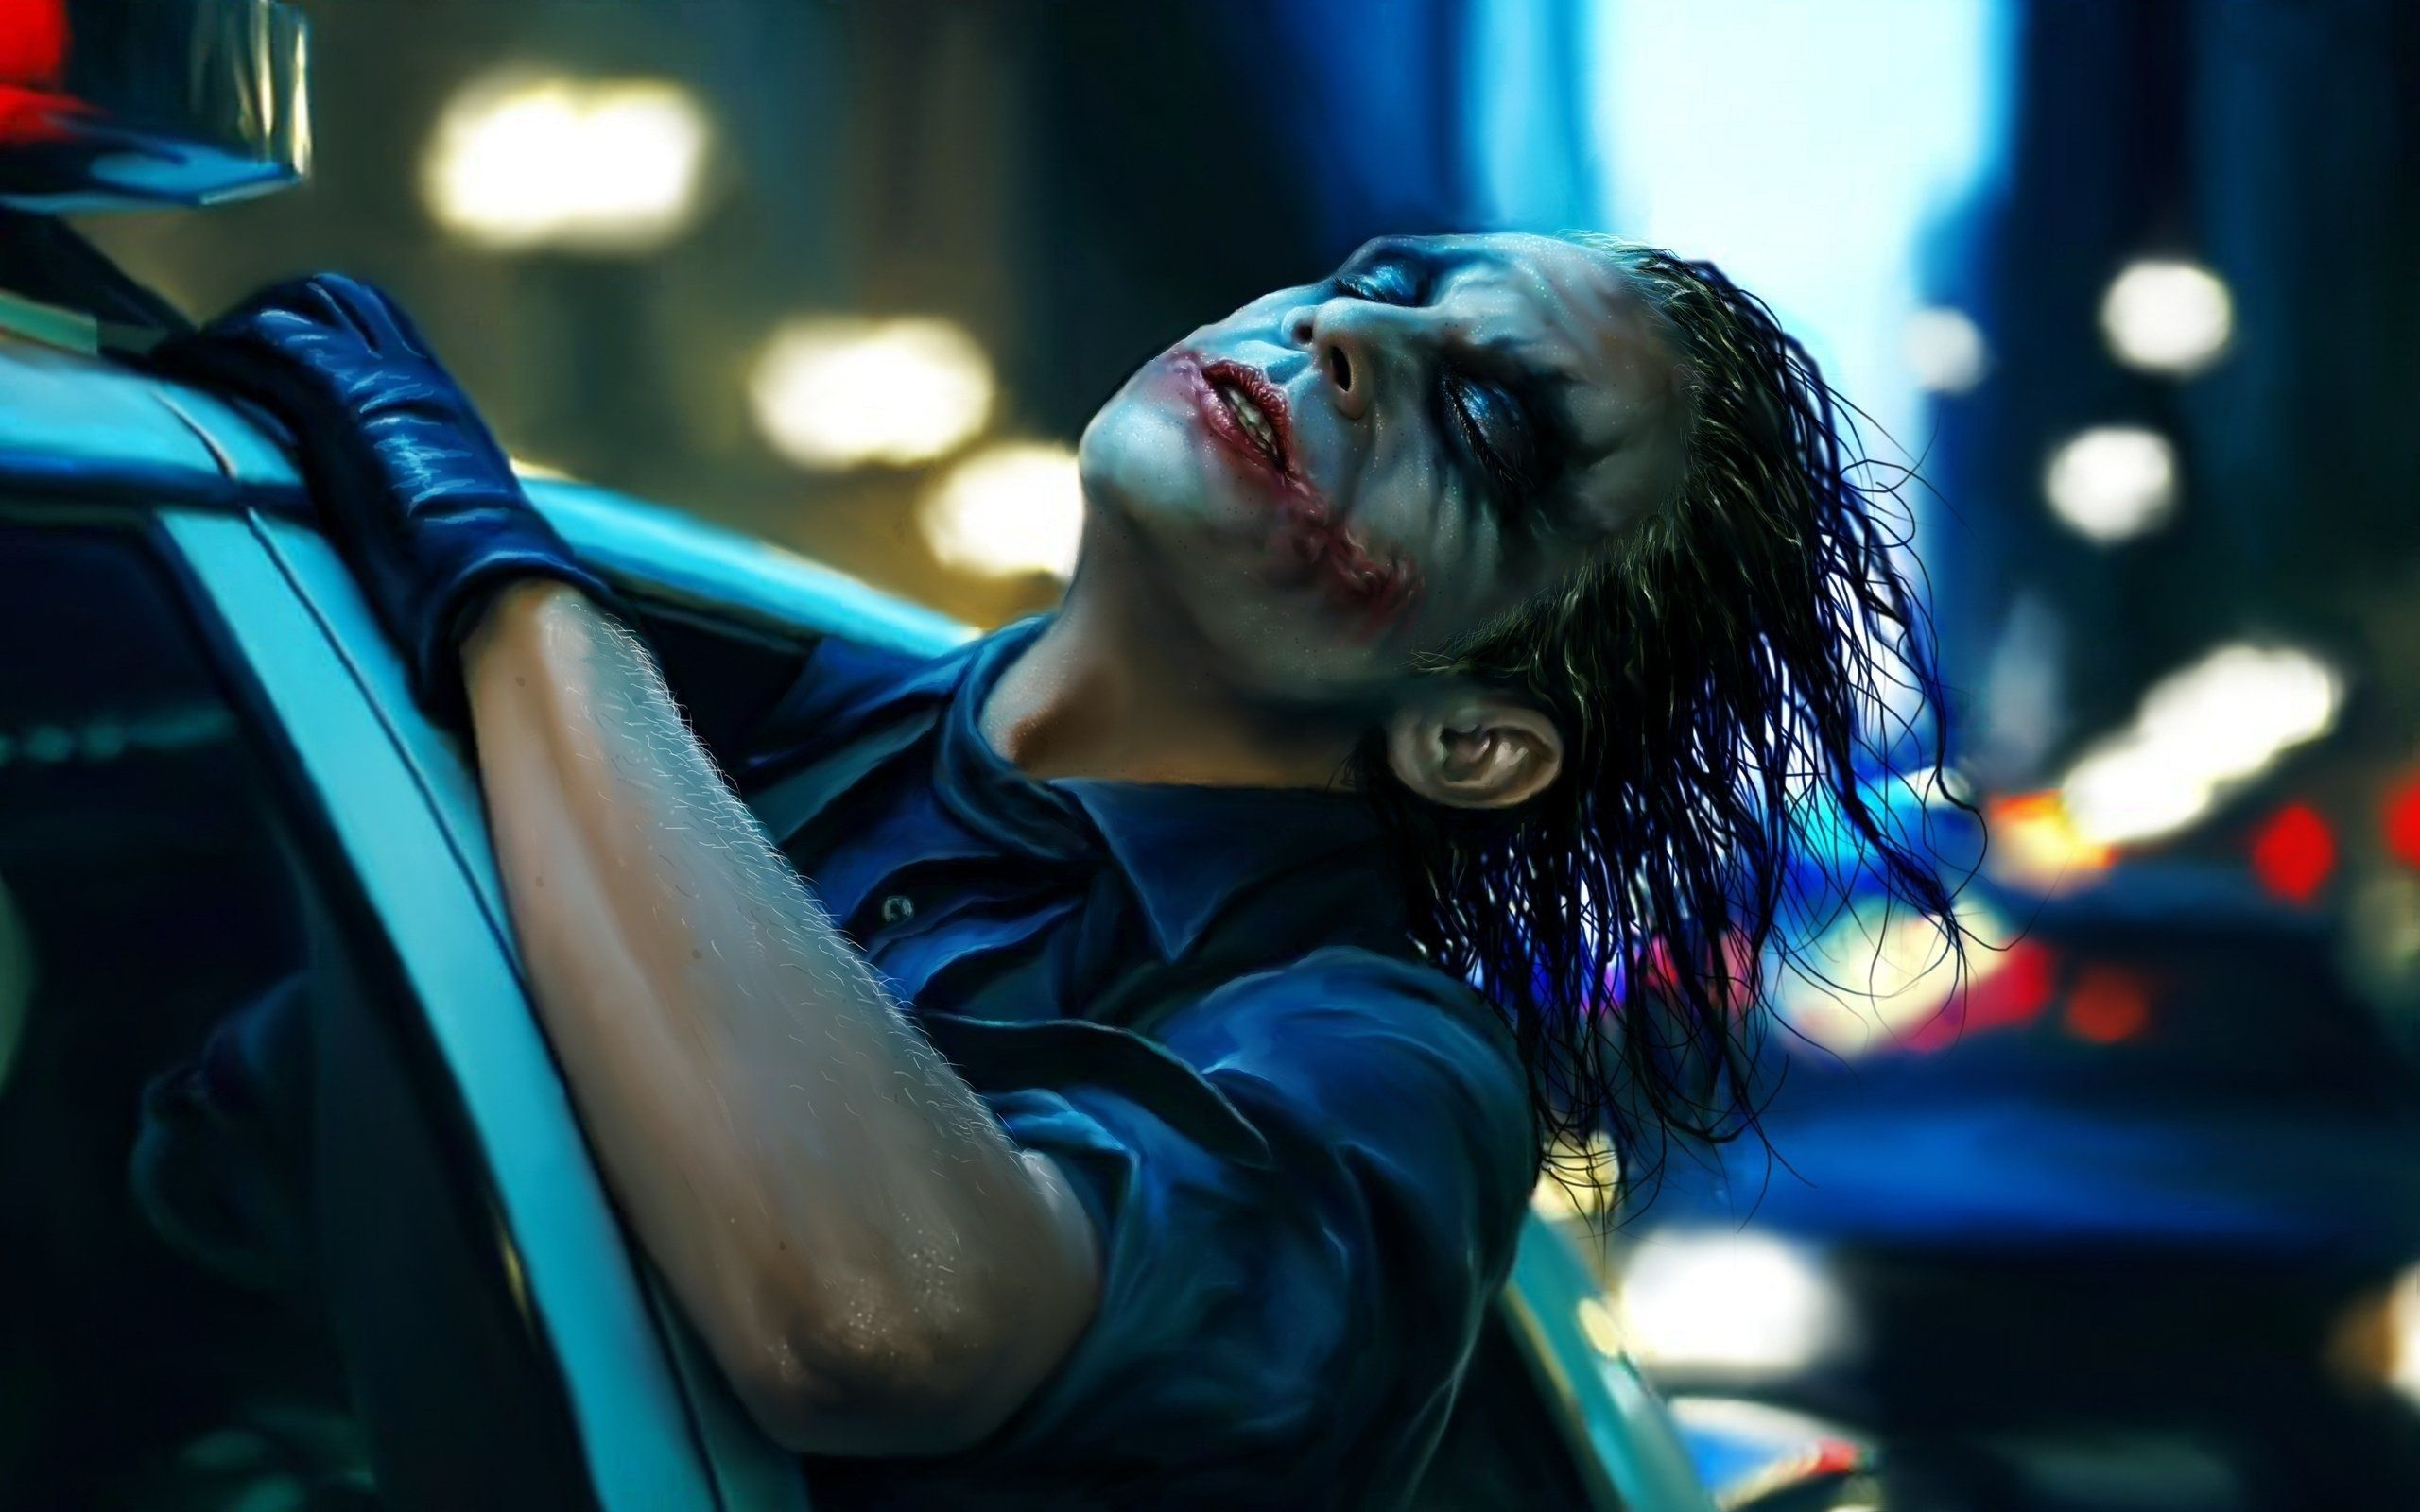 2560x1600 Movies Joker Dark Knight Police Car #2275 Wallpapers and ...